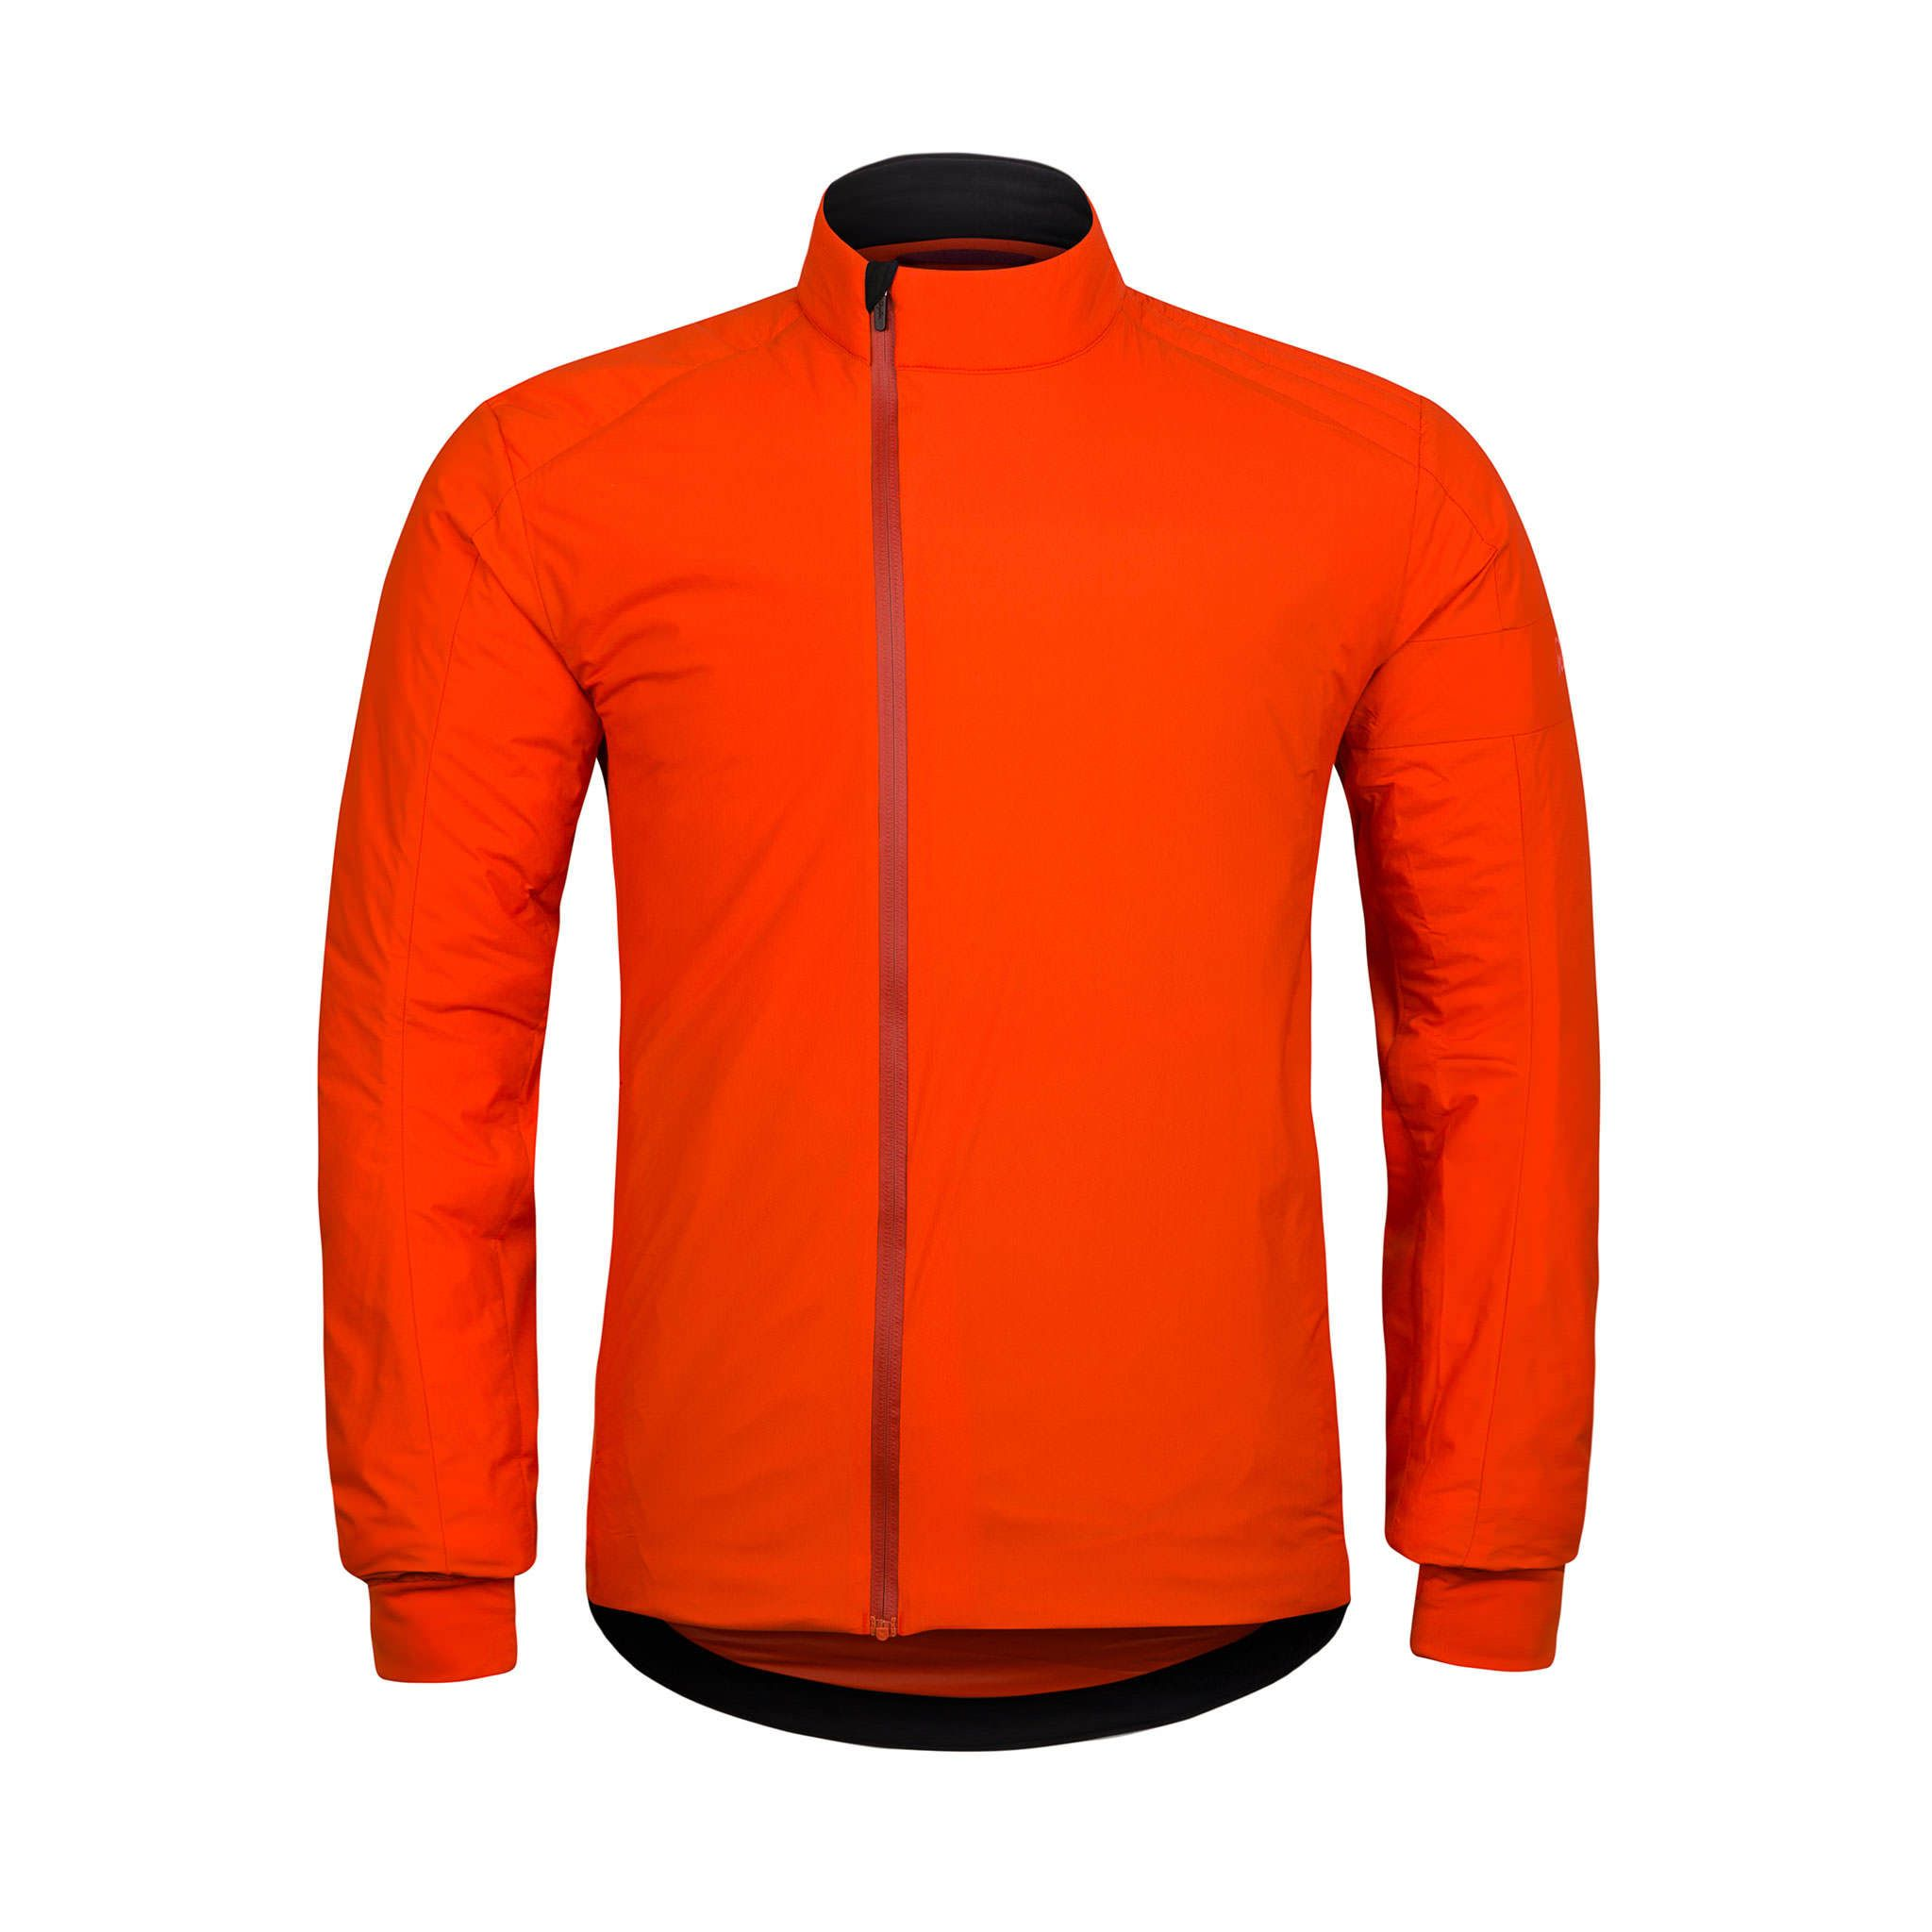 foto de Rapha Transfer Jacket | Clothes, Cycling outfit, Lightweight jacket